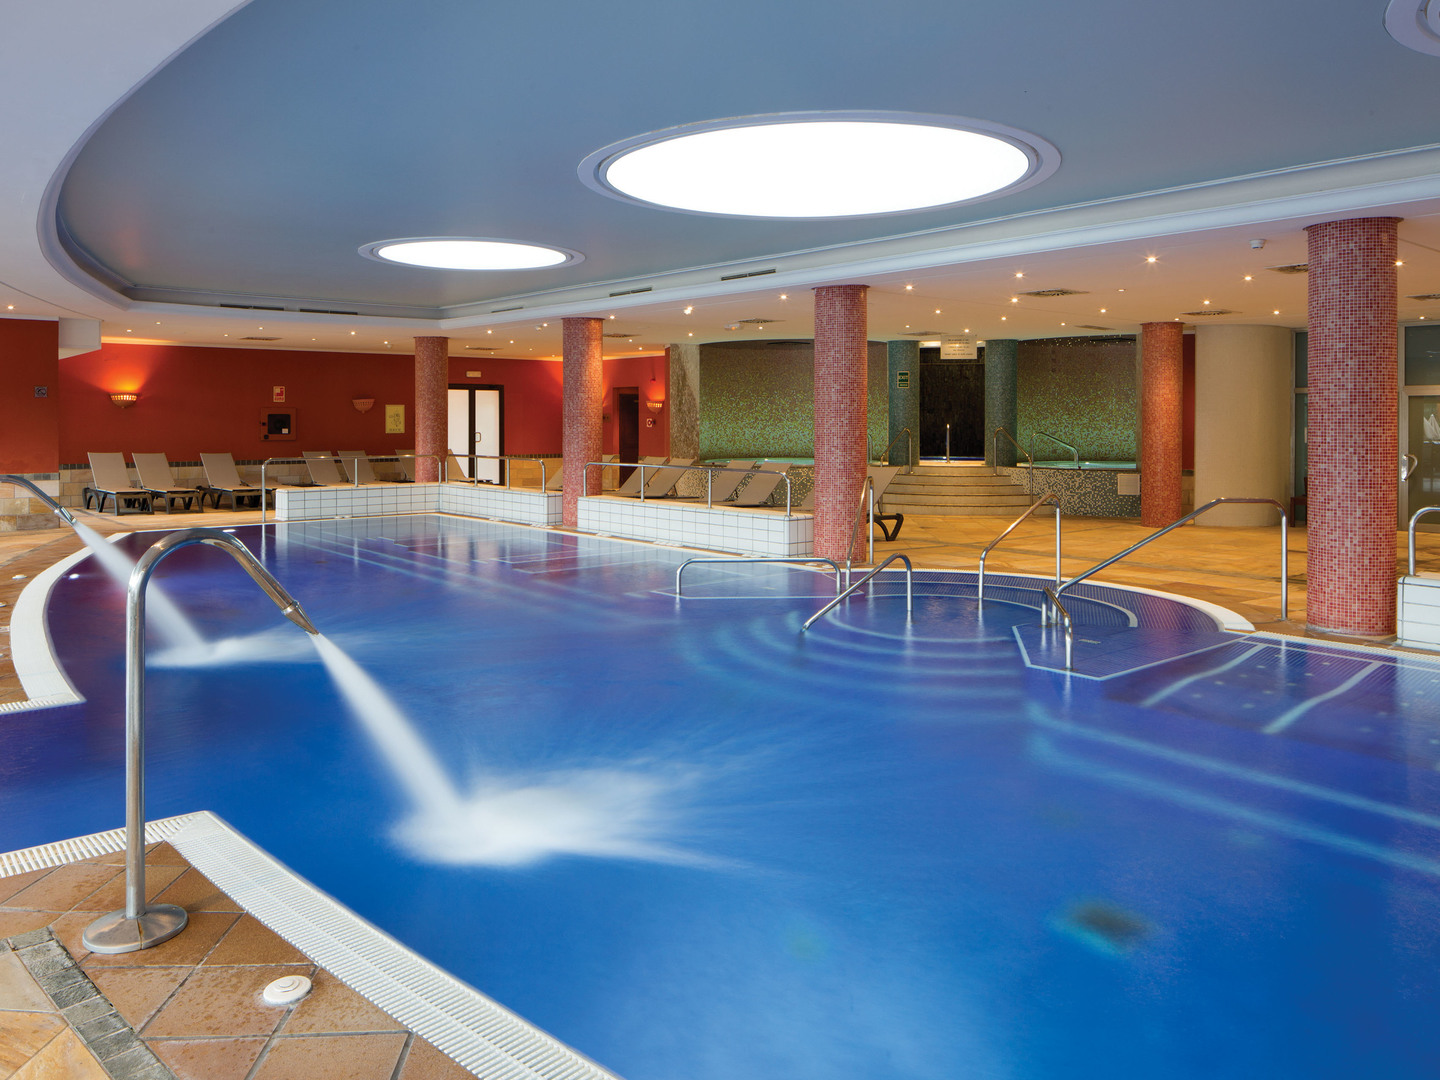 Marriott's Club Son Antem Indoor Spa and Pool. Marriott's Club Son Antem is located in Mallorca,  Spain.